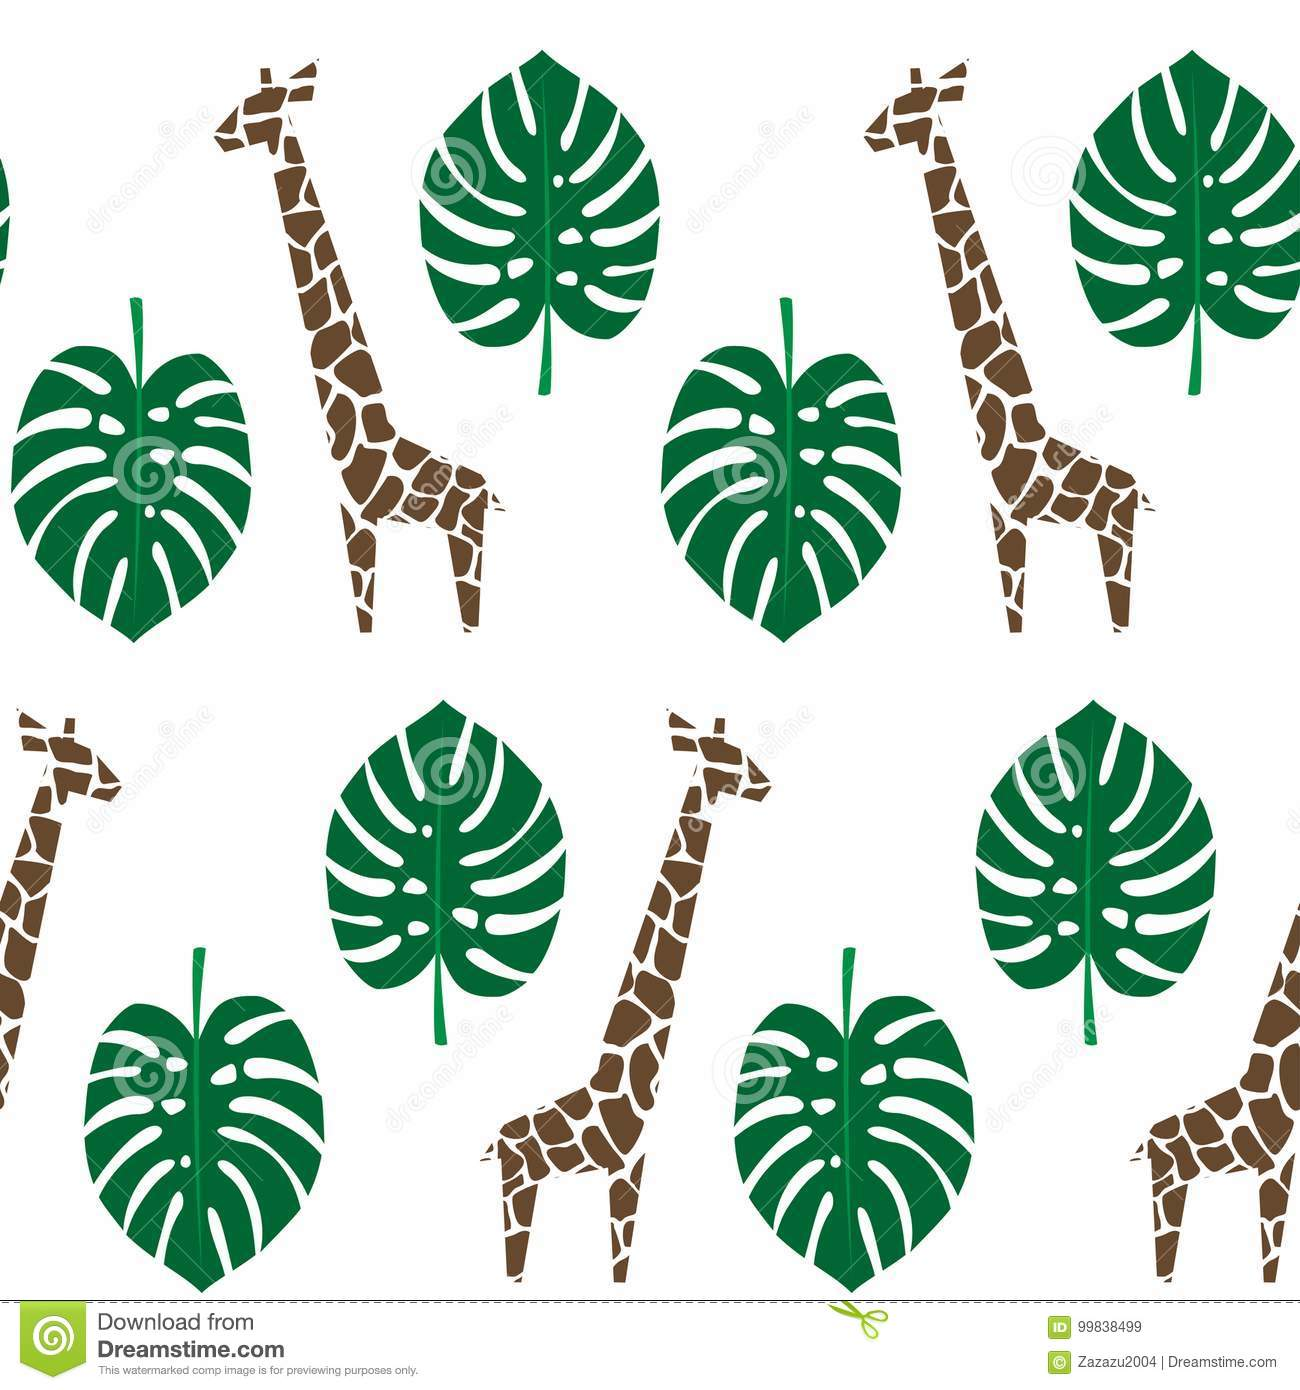 Giraffes and palm leaves seamless pattern on white background